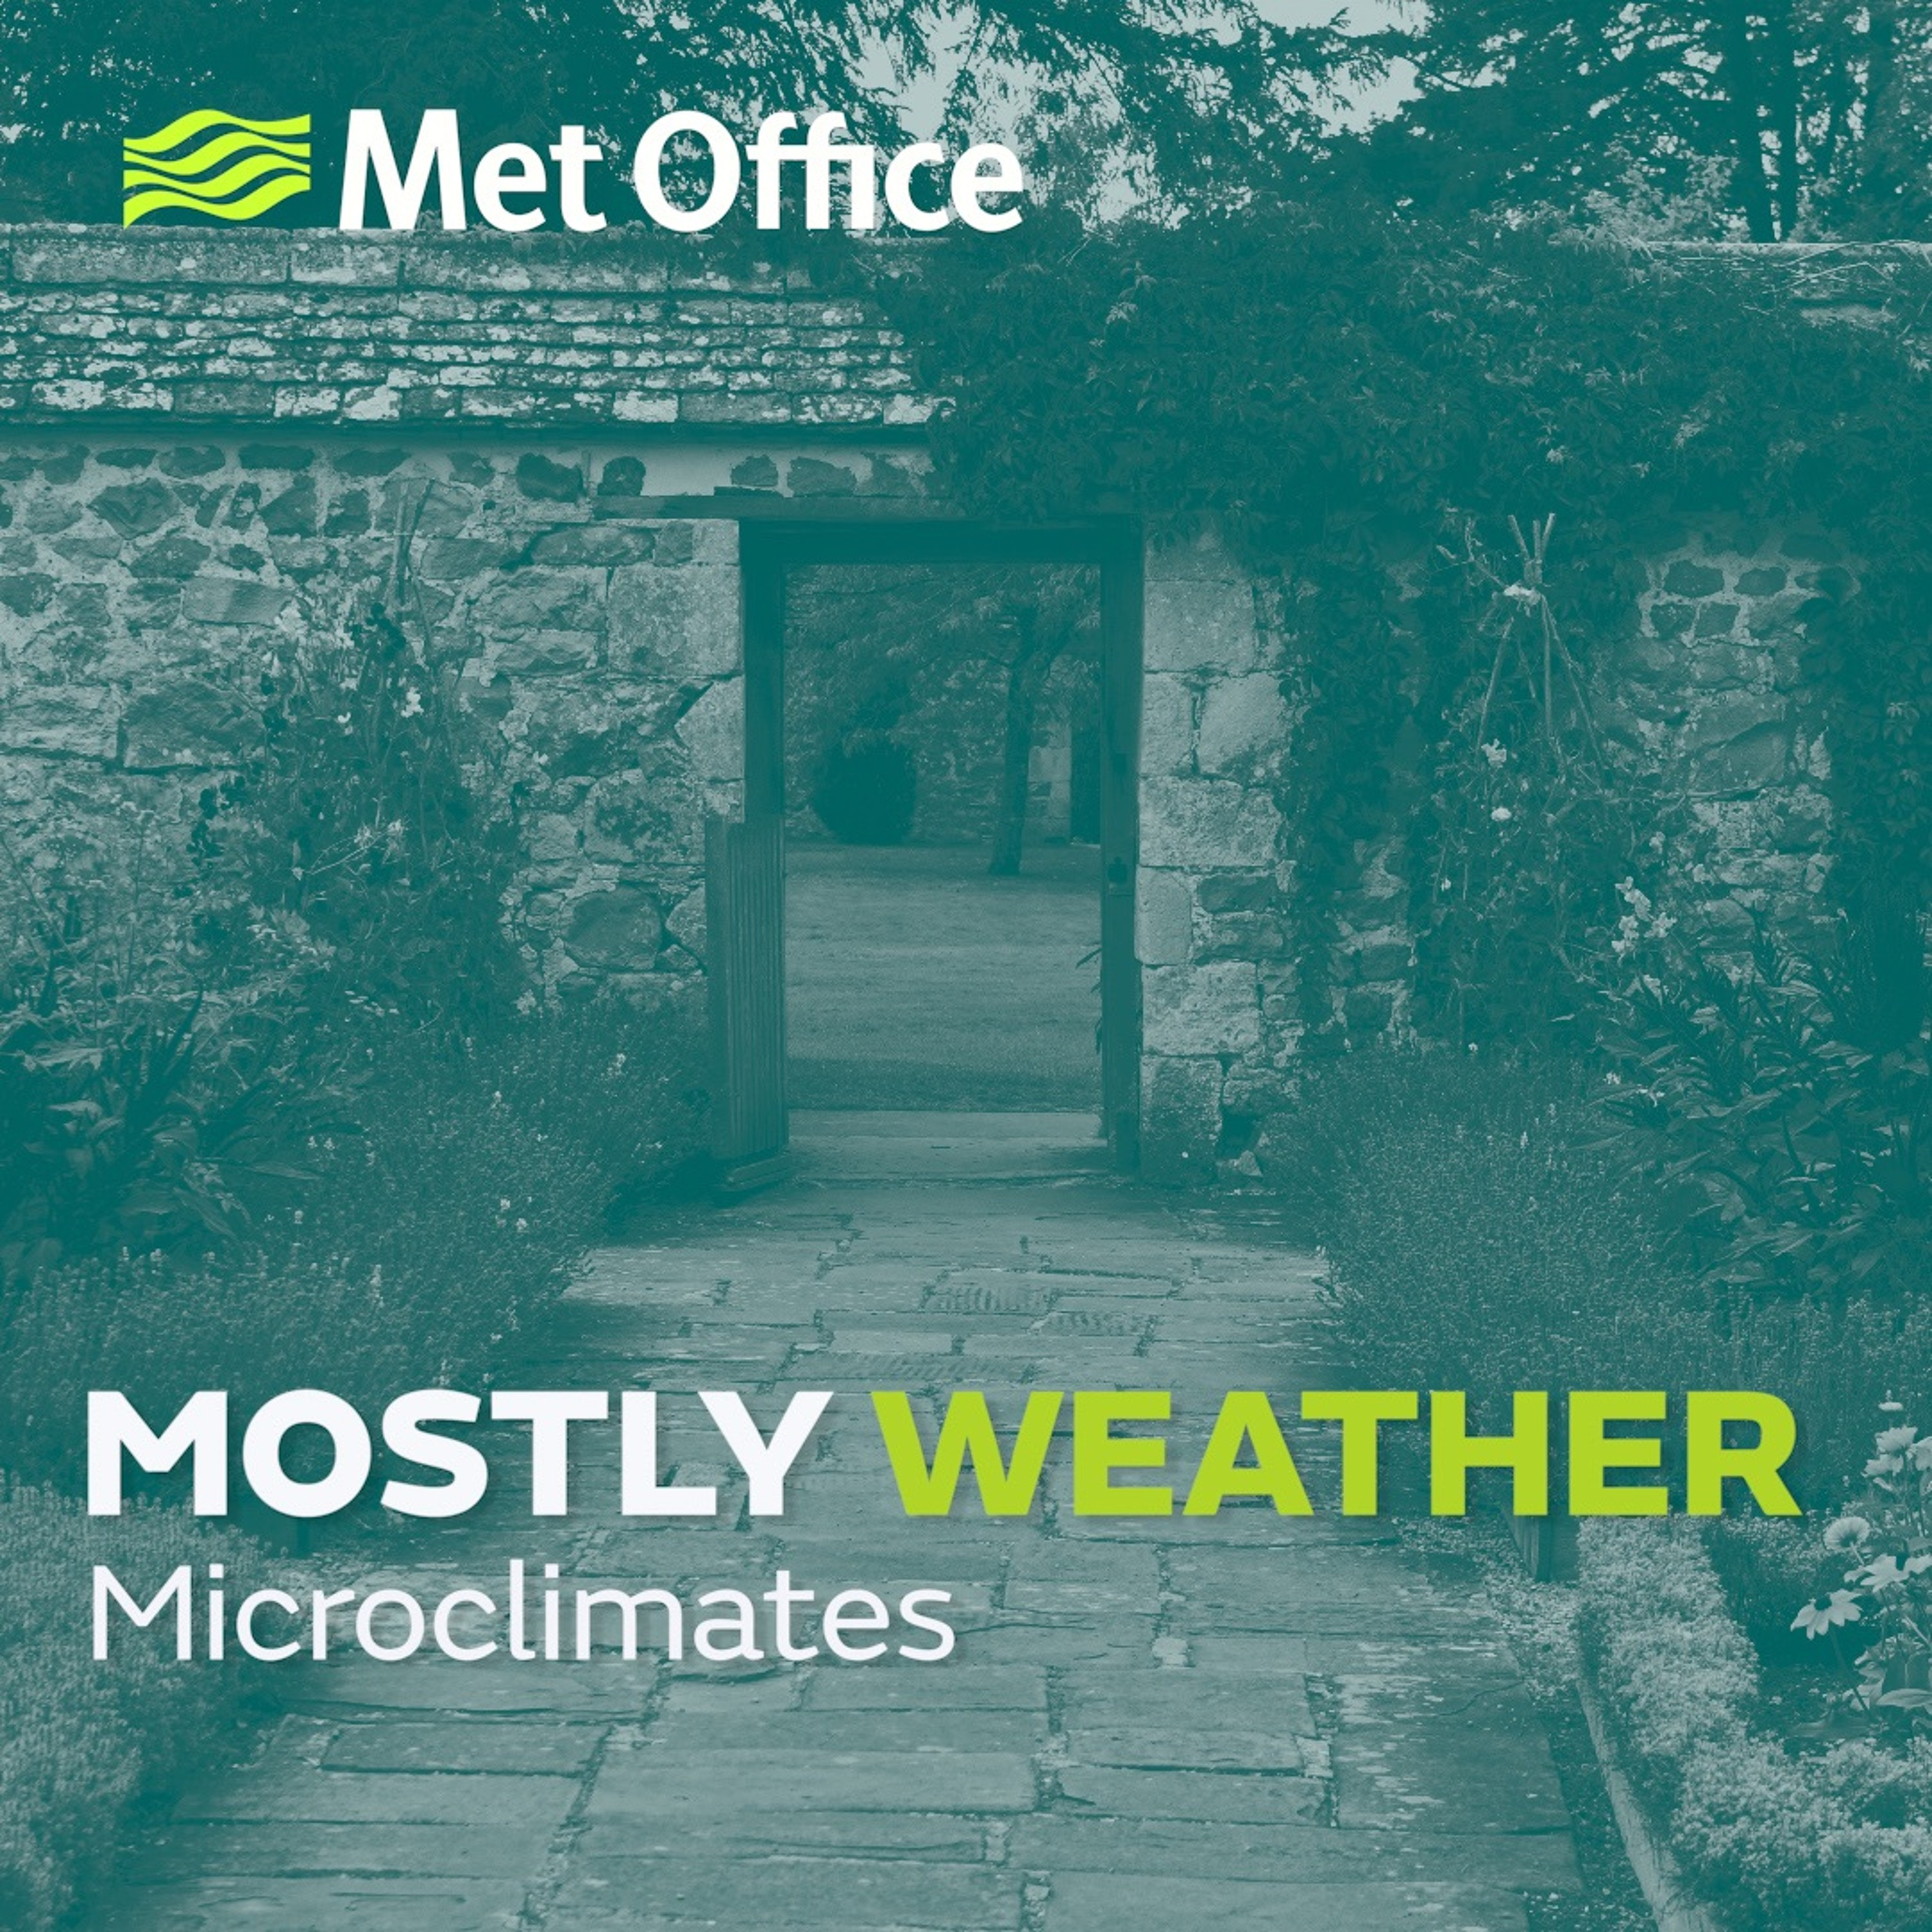 Mostly Weather Microclimates